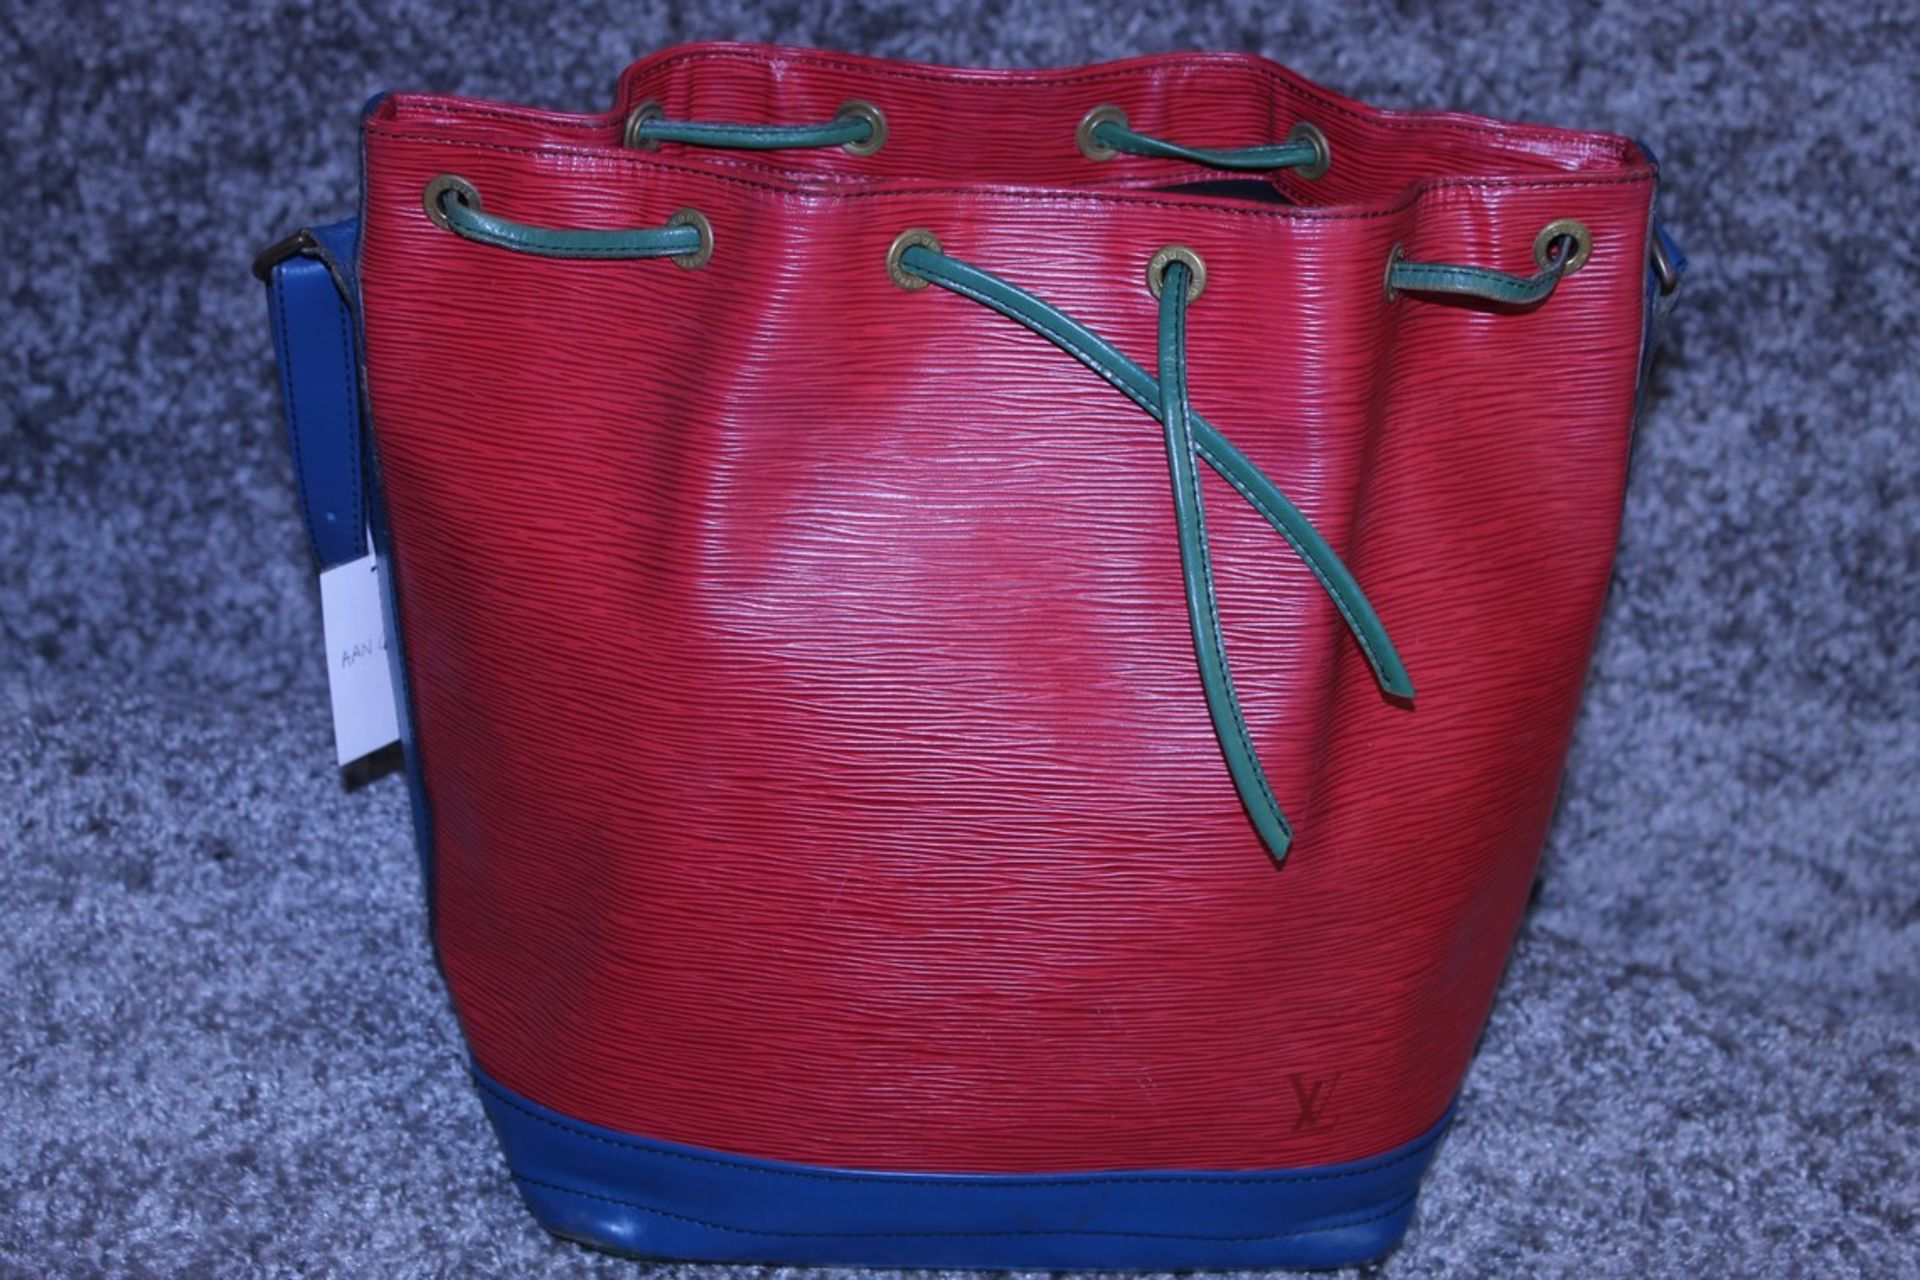 RRP £1,200 Noe Tricolor Shoulder Bag, Red/Blue/Green Epi Claf Leather With Black Stitching - Image 2 of 3